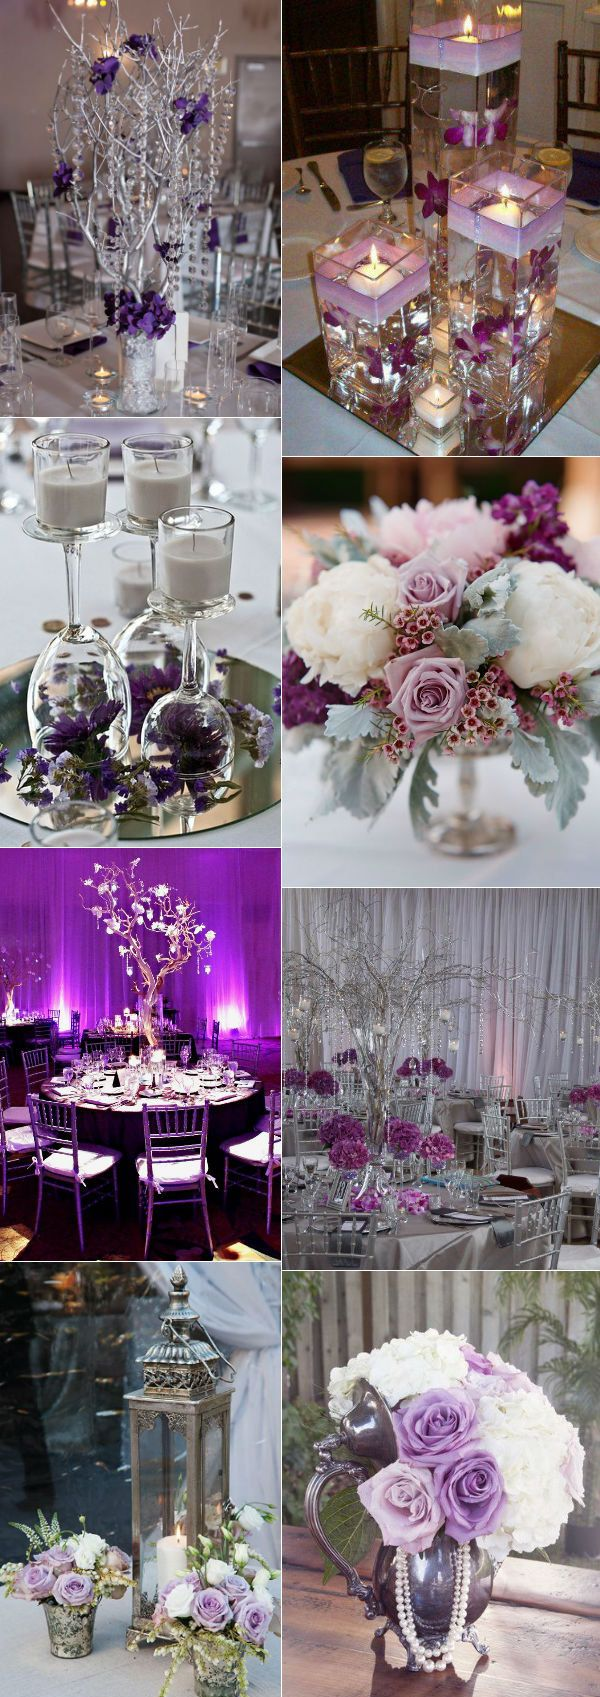 Stunning wedding color ideas in shades of purple and silver stunning purple and silver wedding decorations and centerpieces junglespirit Image collections